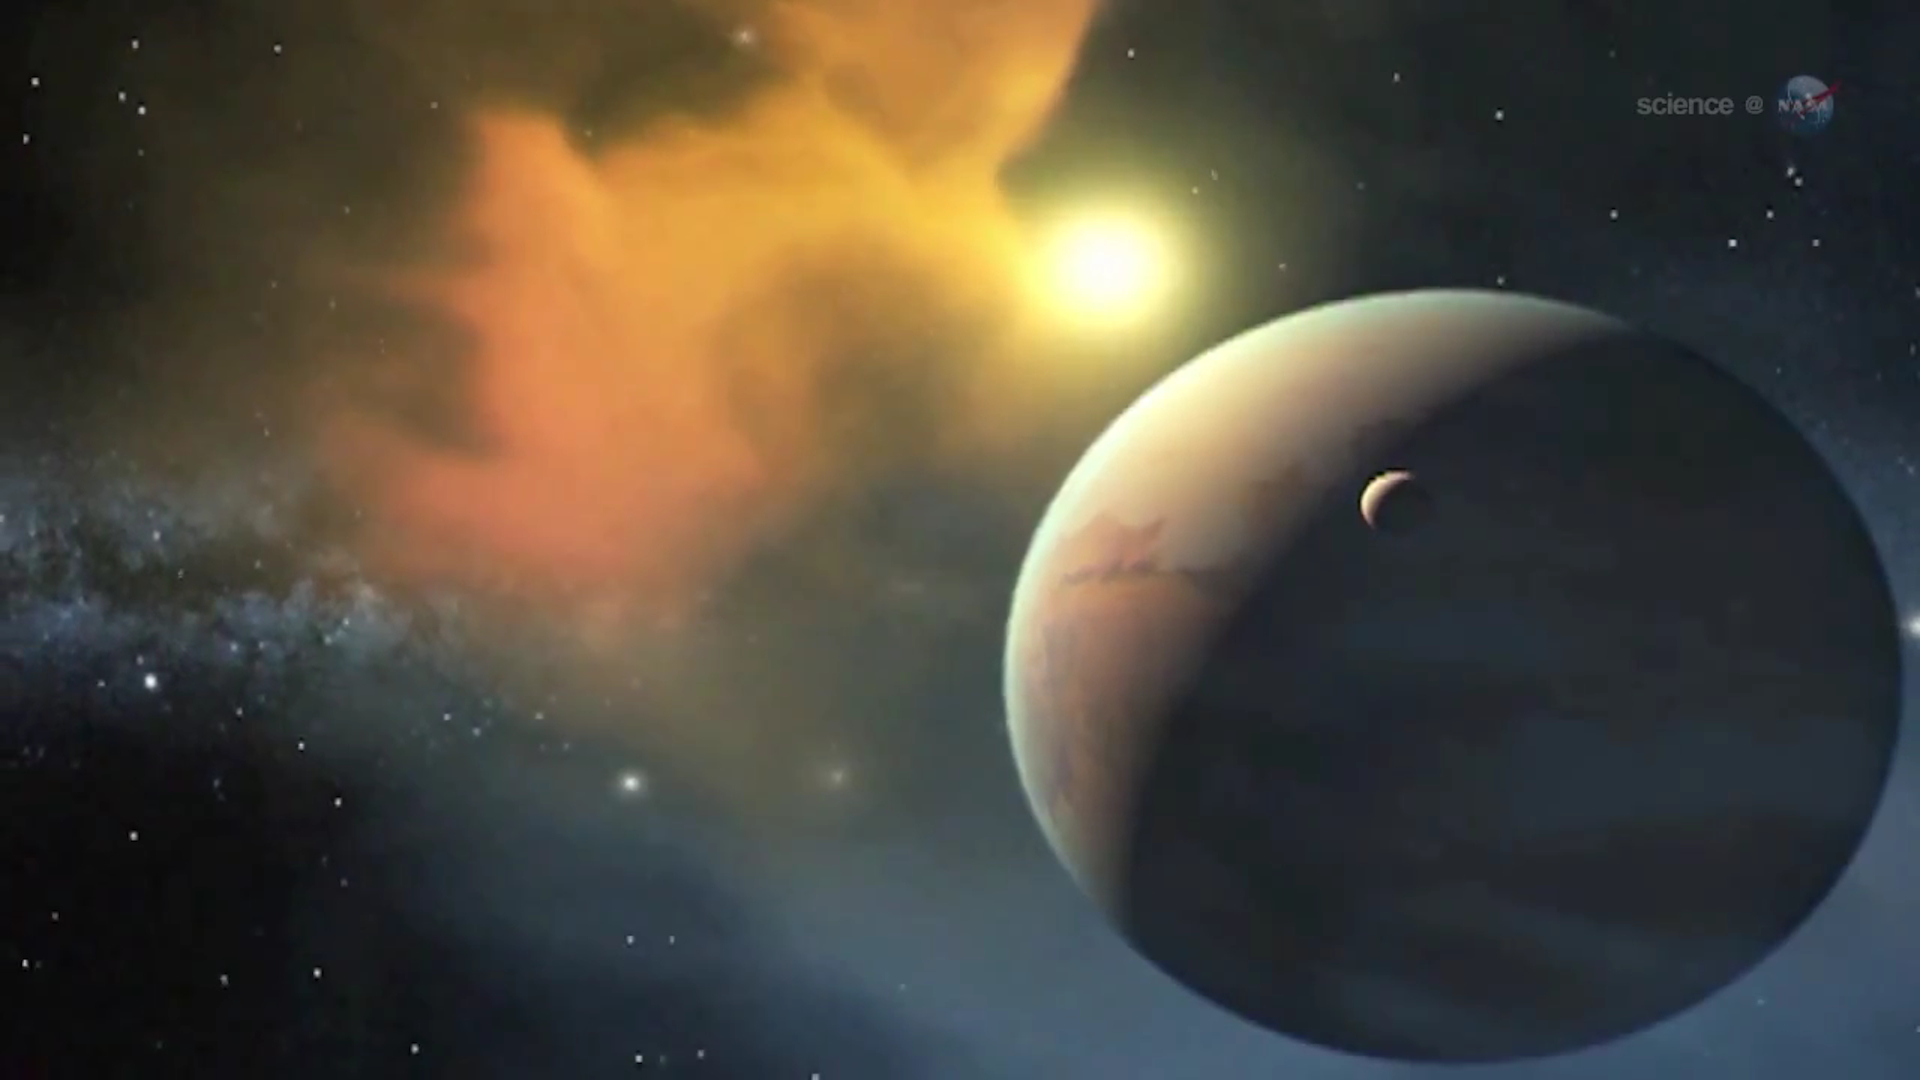 NASA: Kepler telescope finds another 715 planets - The ...